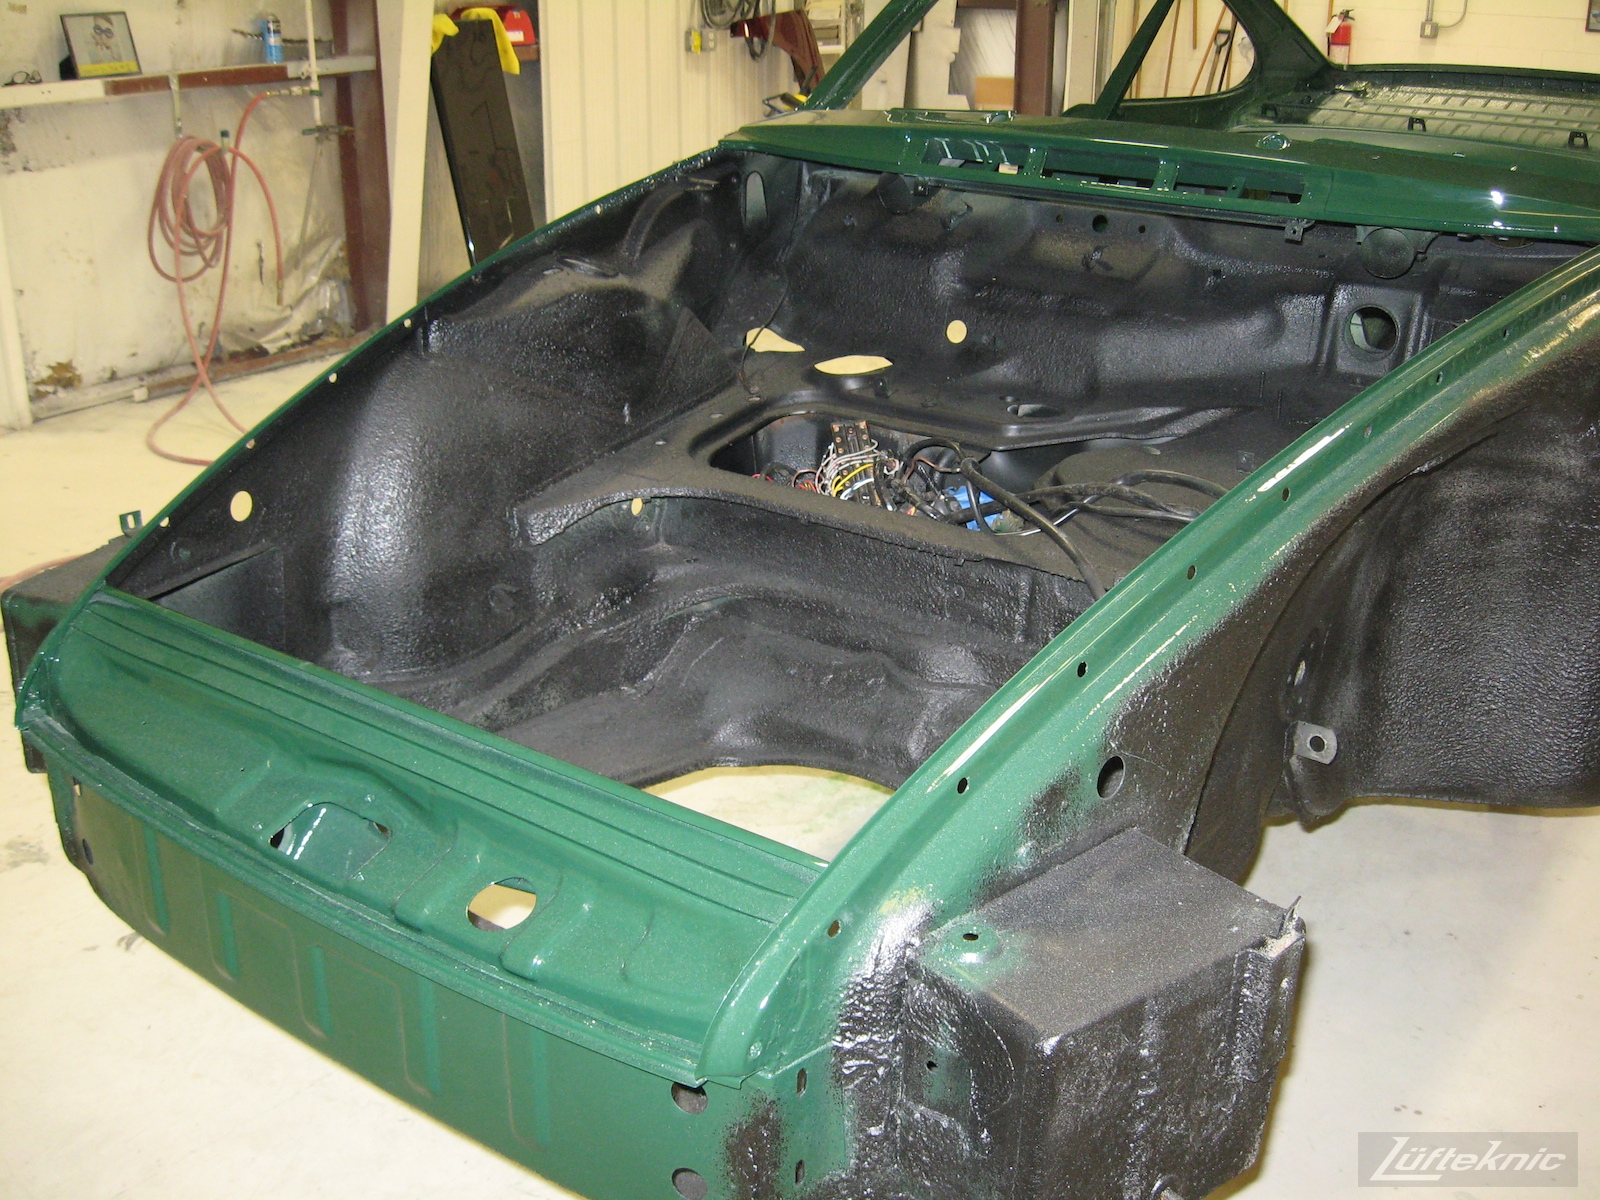 Freshly painted and coated body shell front pan detail of an Irish Green Porsche 912 undergoing restoration at Lufteknic.